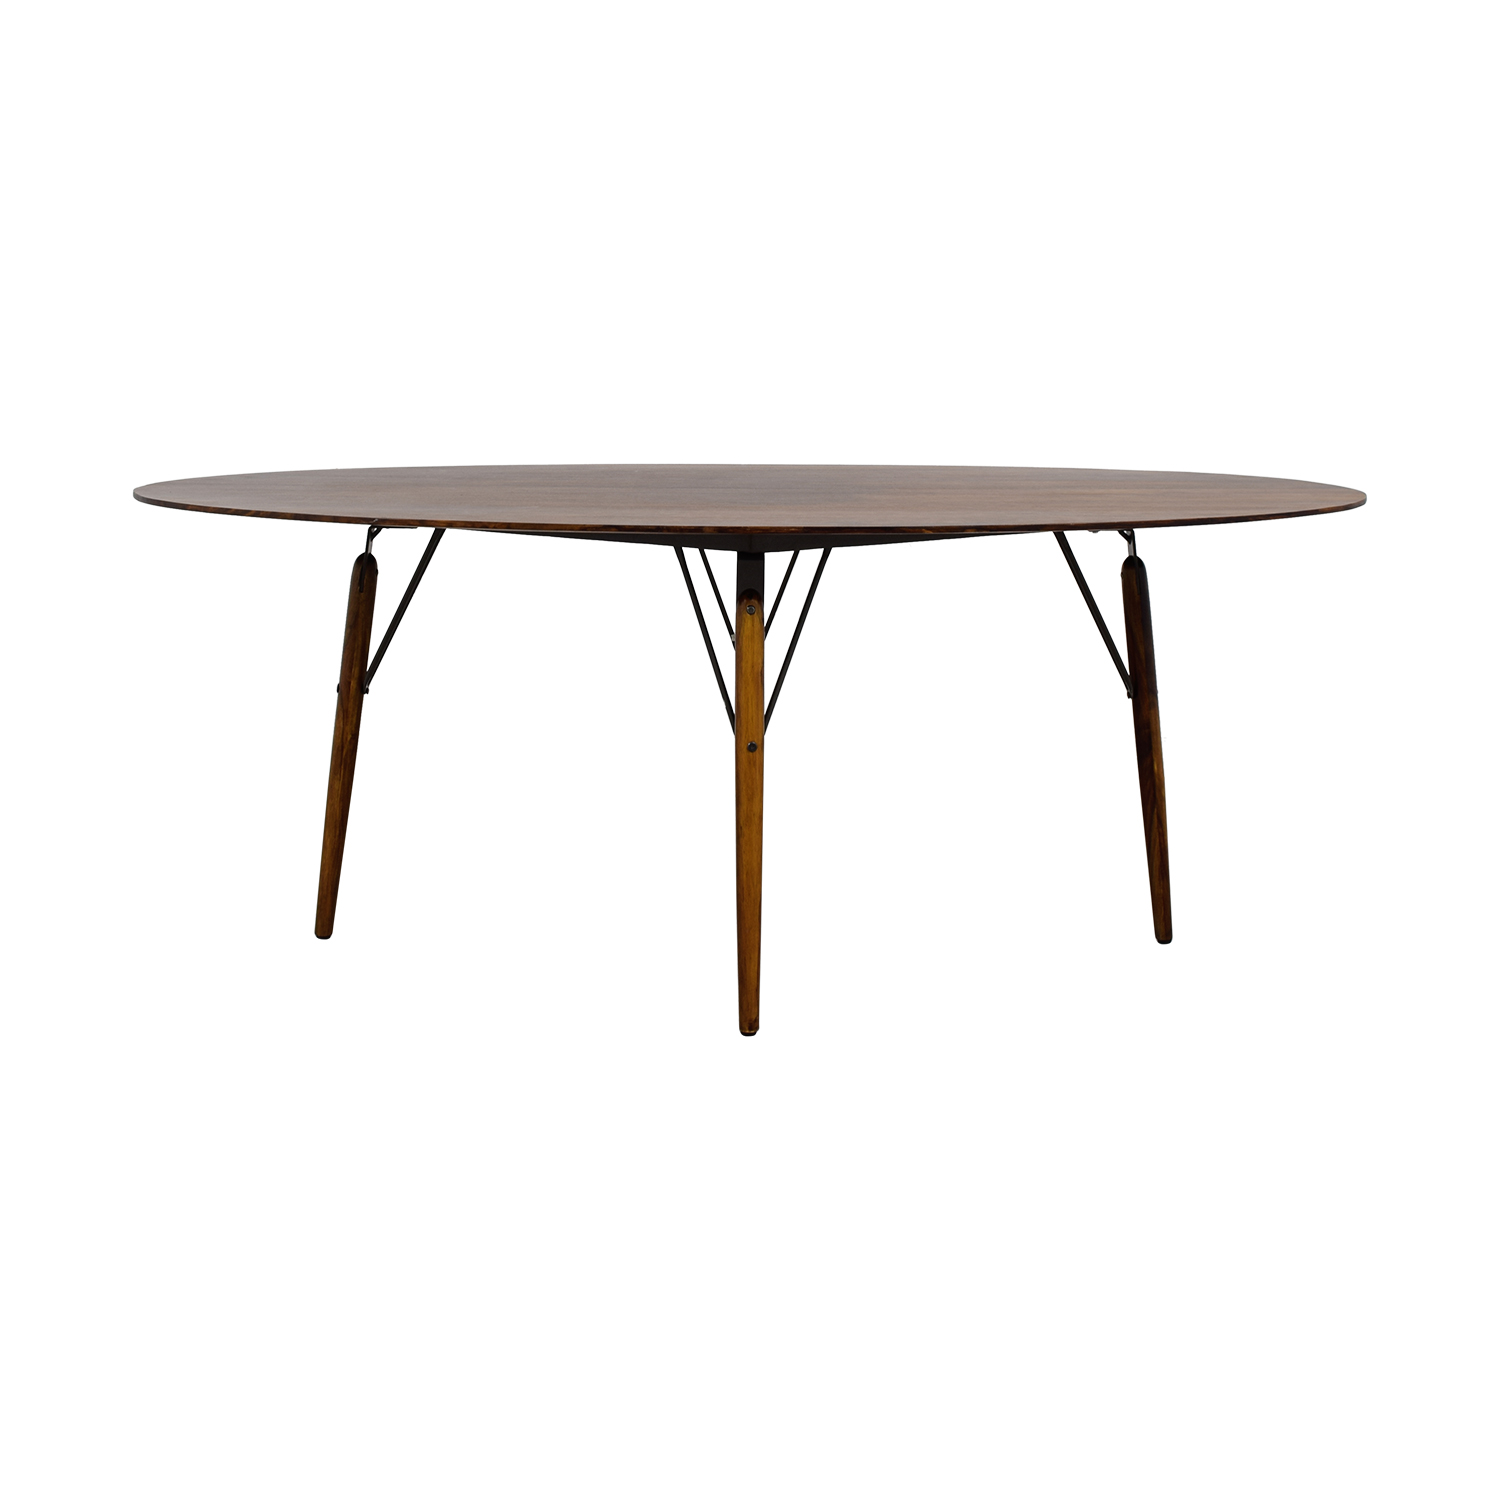 Swoon Editions Swoon Editions Rosewood Oval Wood Dining Table